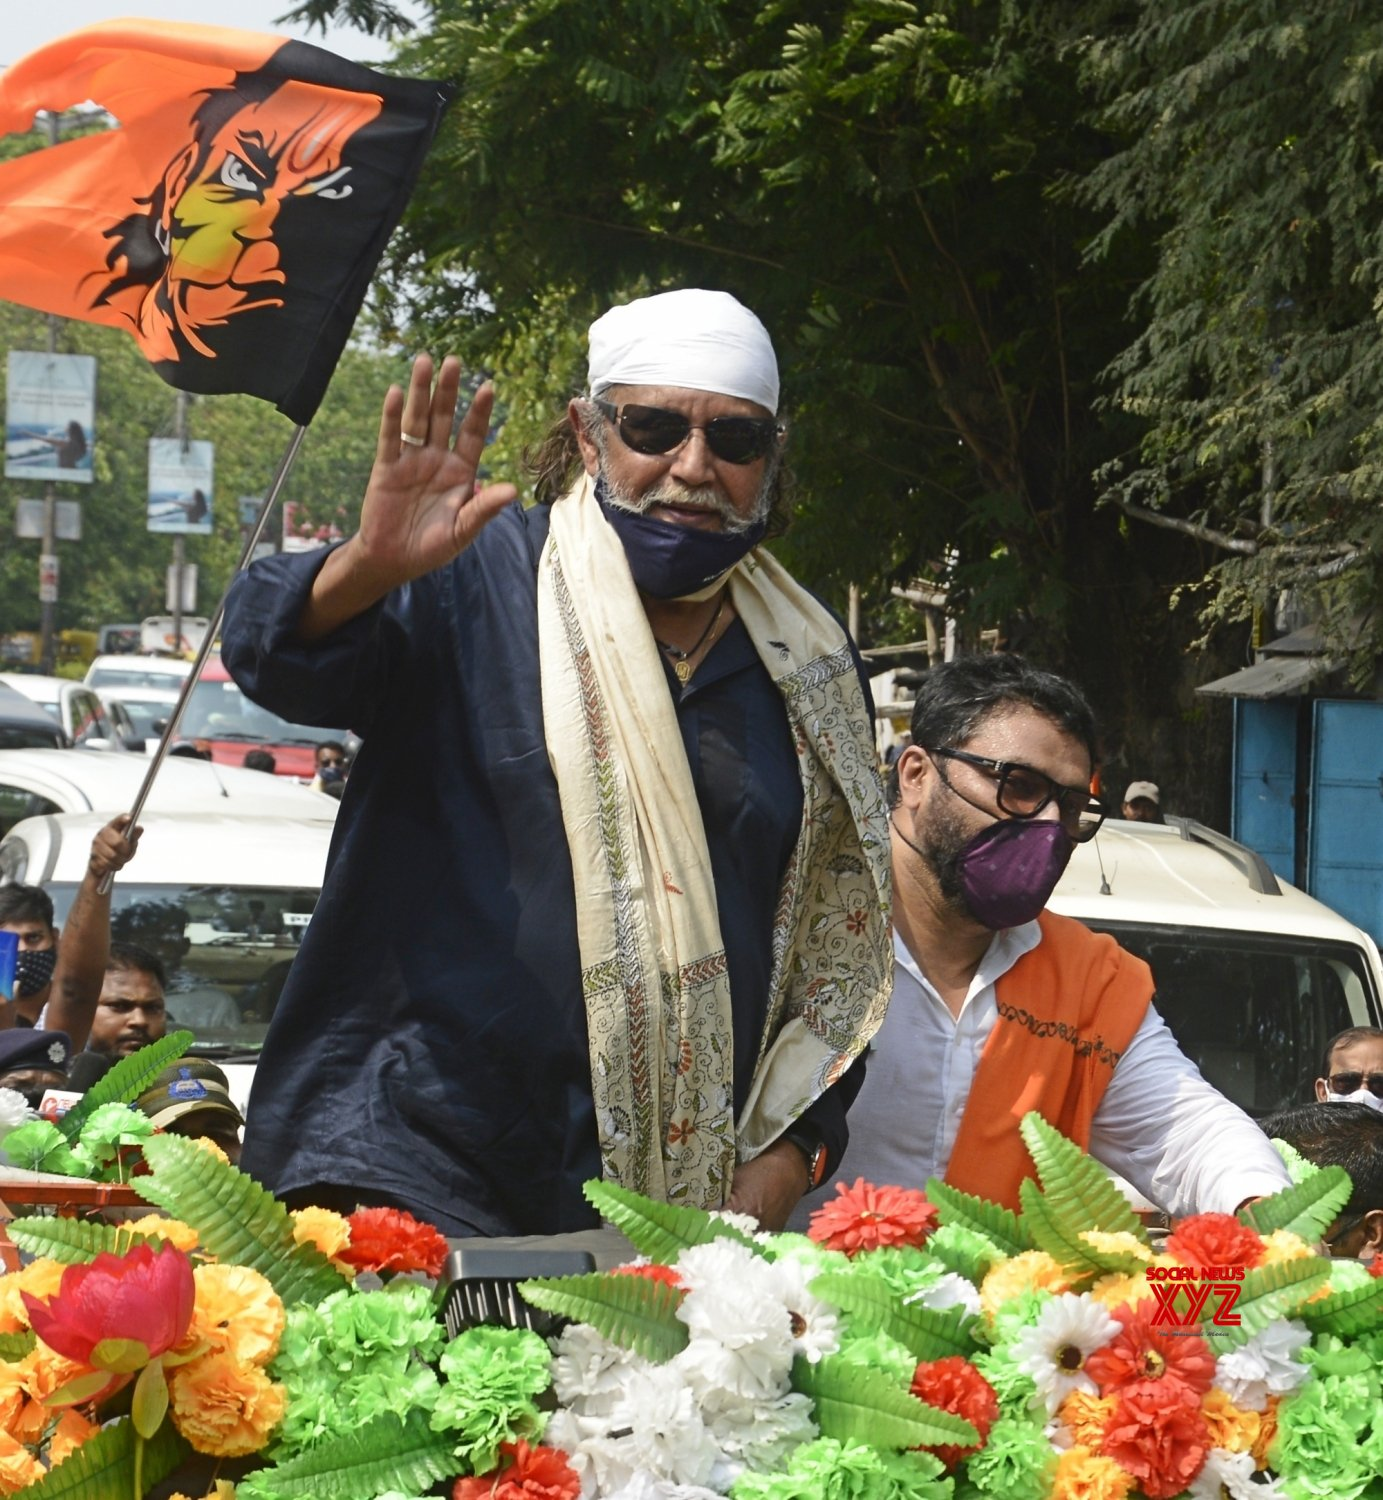 Kolkata : Actor turned BJP leader Mithun Chakraborty along with BJP candidate for Tollygunge constituency, Union Minister of State for Environment, Forest and Climate Change, Babul Supriyo at a roadshow during campaigning for the State Assembly election in Kolkata on April 8, 2021. #Gallery